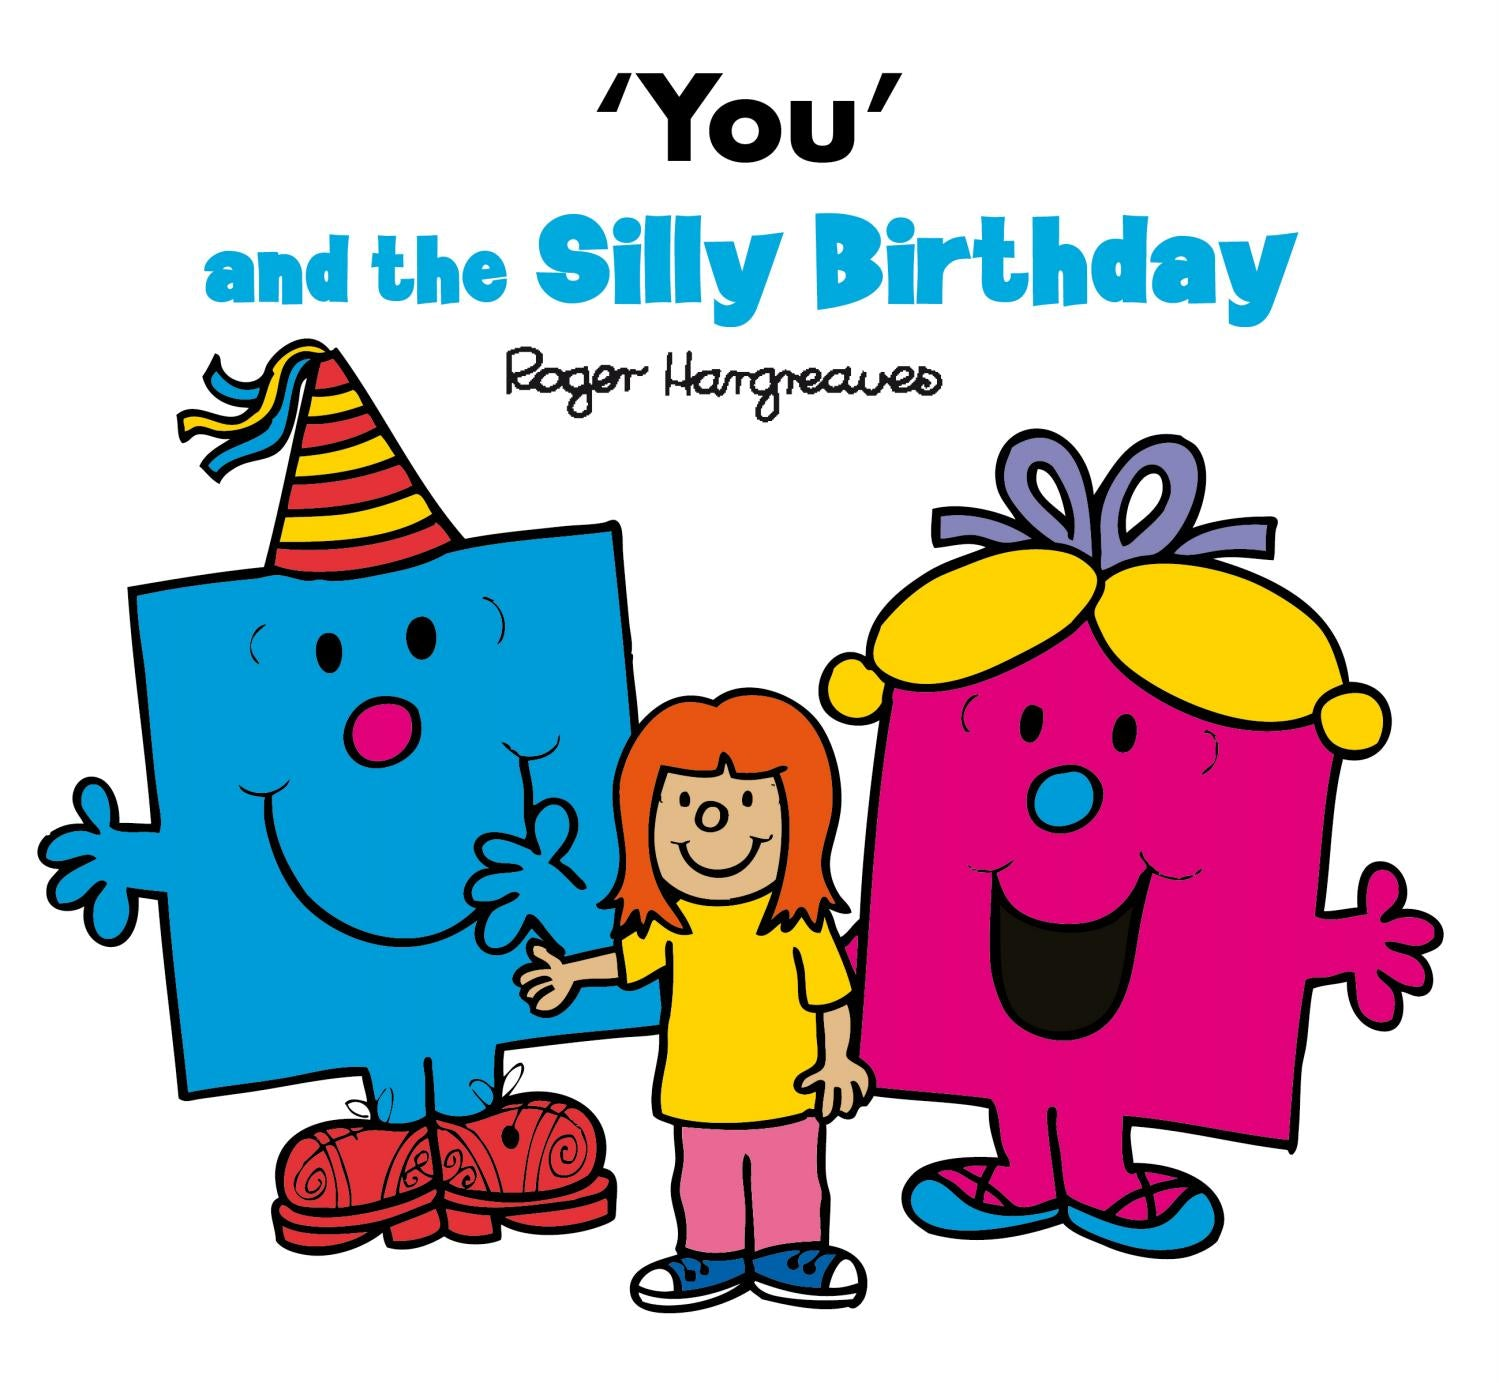 Personalized books for 2-4 years